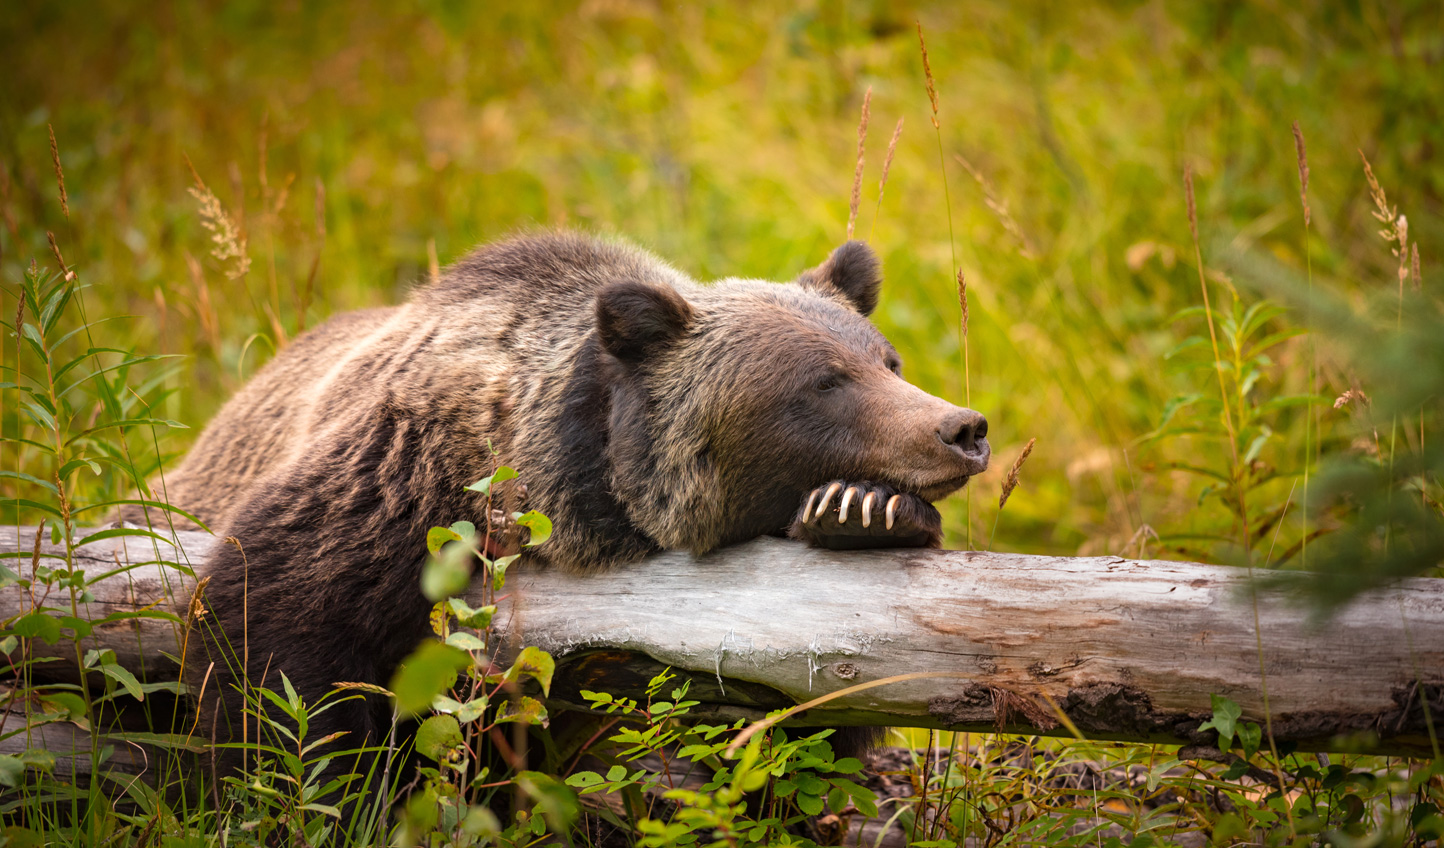 Spot grizzlies in their natural habitat out on Vancouver Island